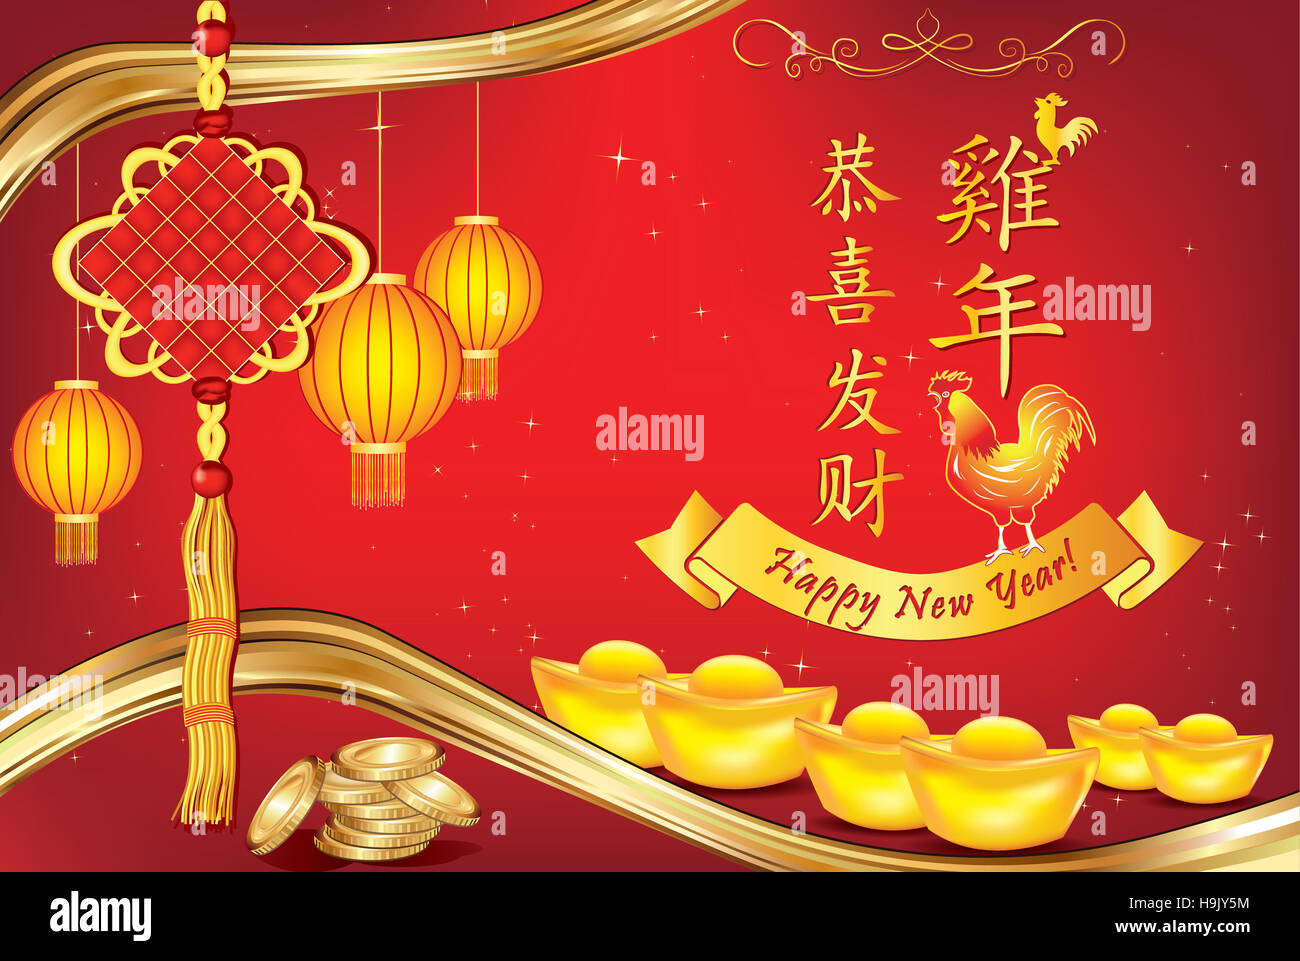 Chinese New Year Of The Rooster 2017 Greeting Card Chinese Text